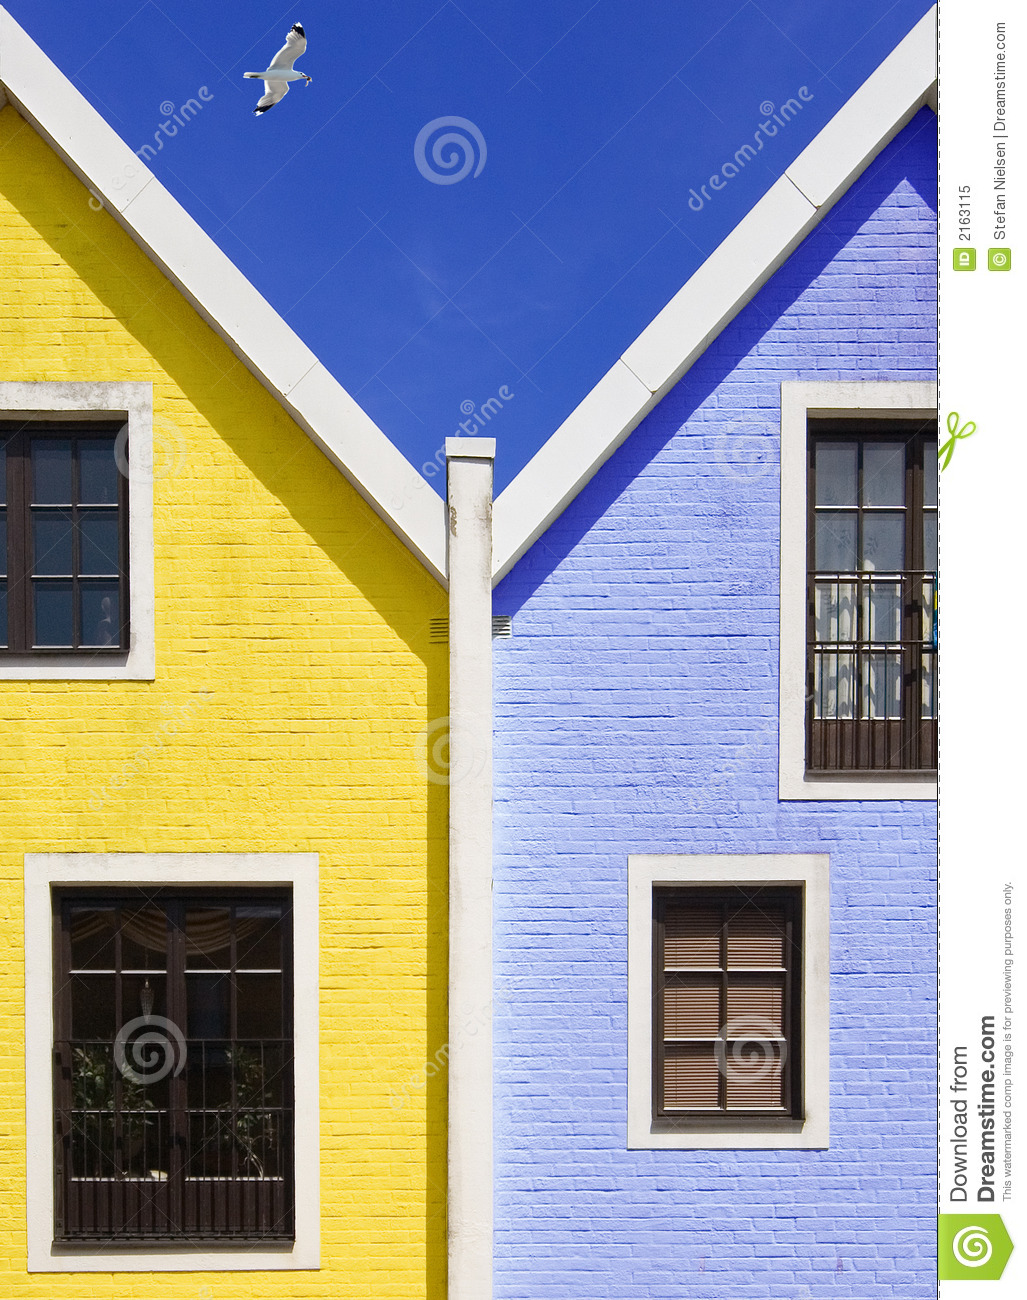 Blue and yellow houses